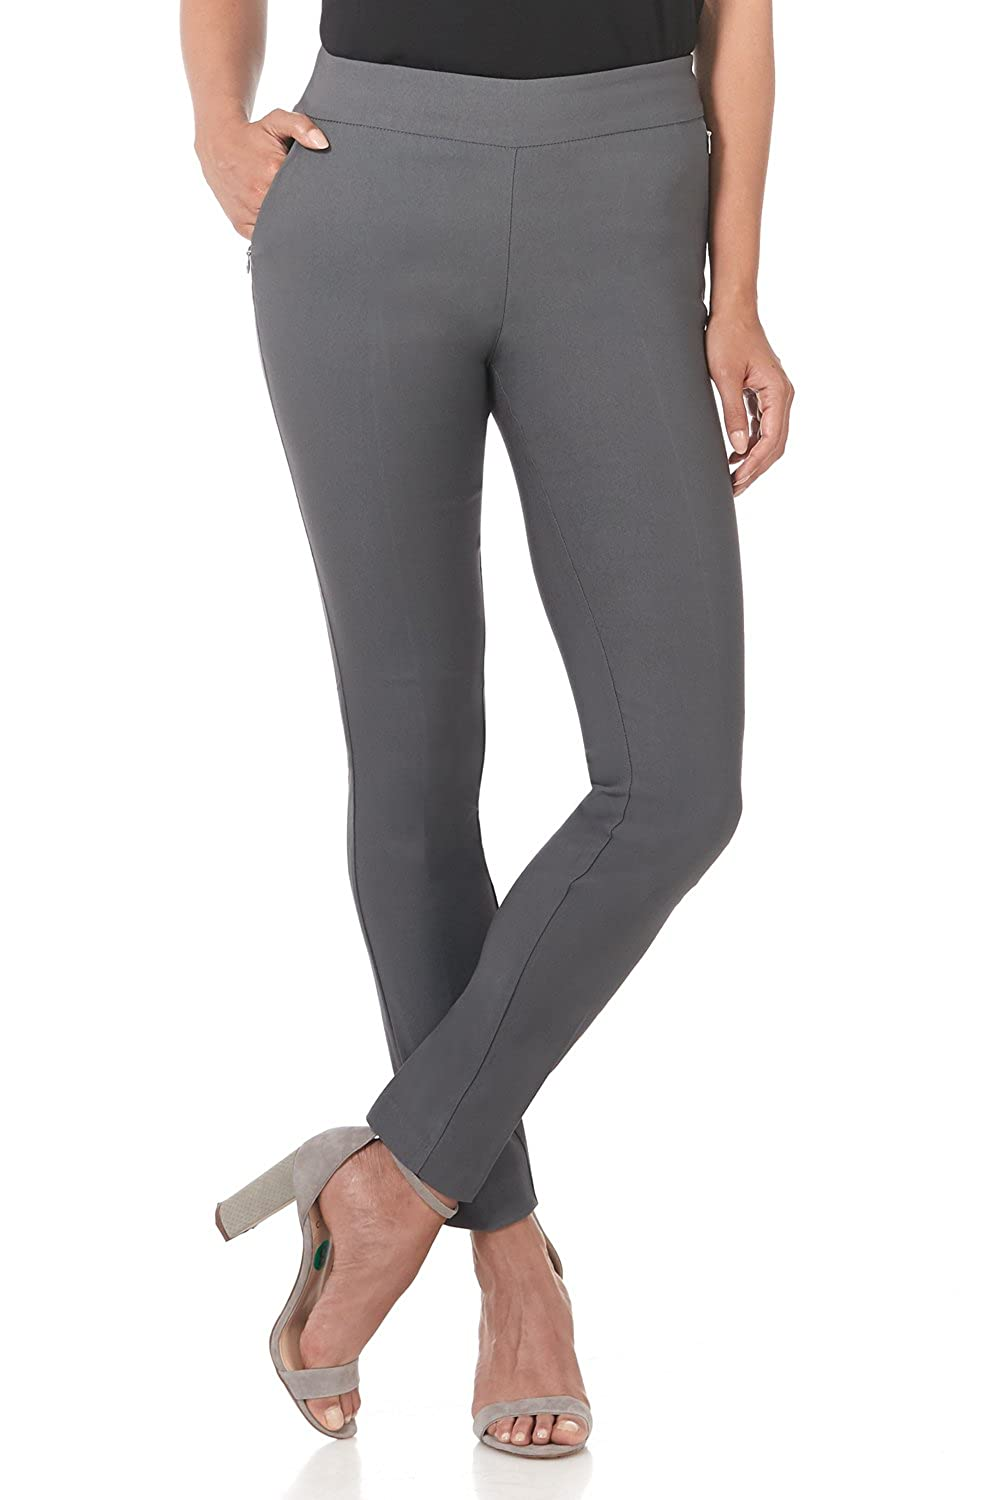 Graphite Rekucci Women's Ease in to Comfort Modern Stretch Skinny Pant w Tummy Control